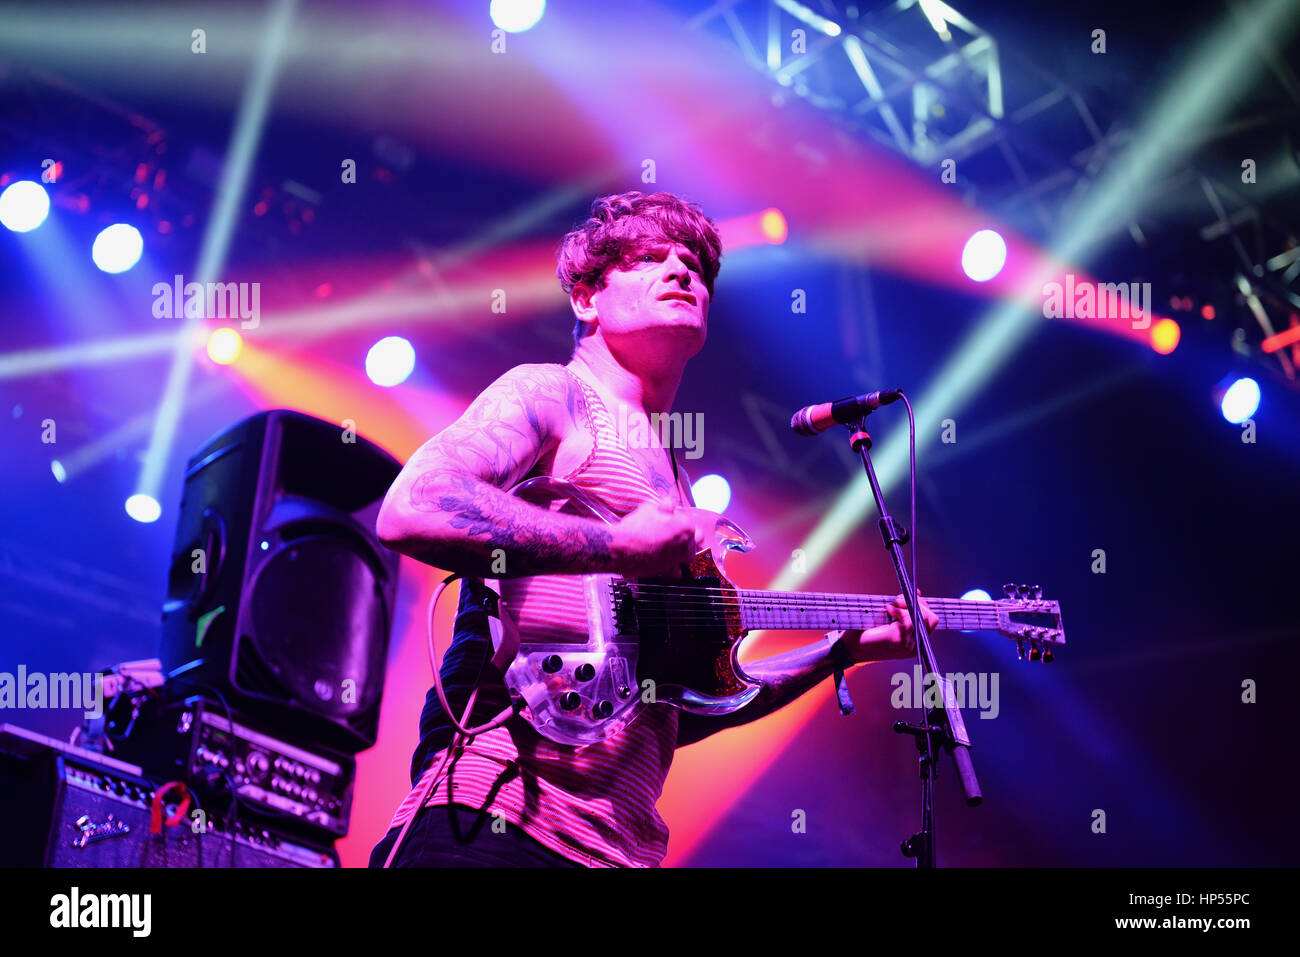 BARCELONA - MAY 30: Thee Oh Sees (band) performs at Primavera Sound 2015 Festival on May 30, 2015 in Barcelona, - Stock Image